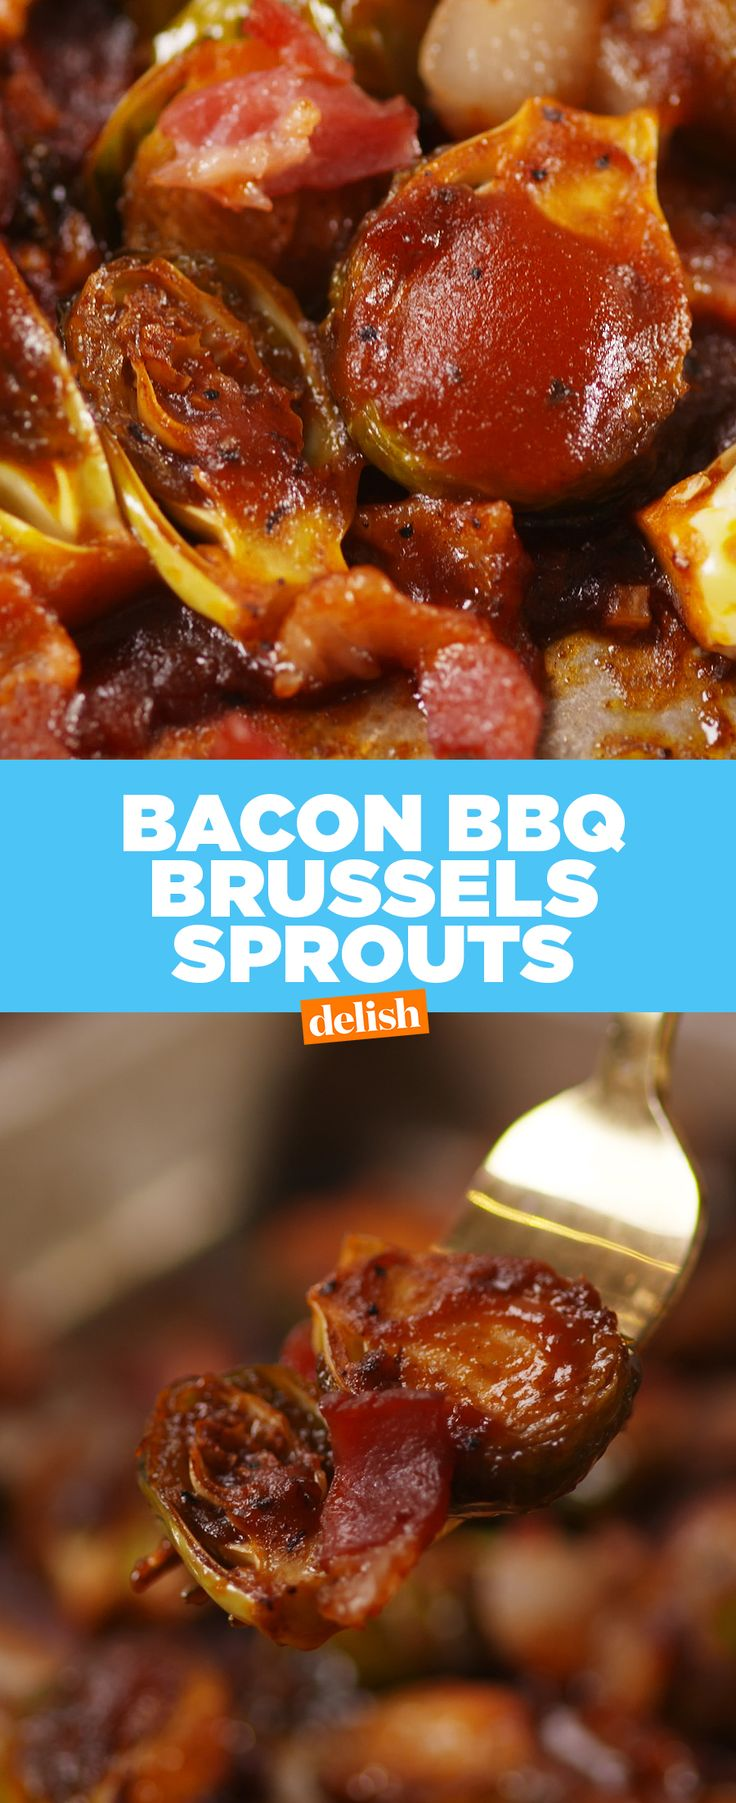 Brussels sprouts as you've never seen them